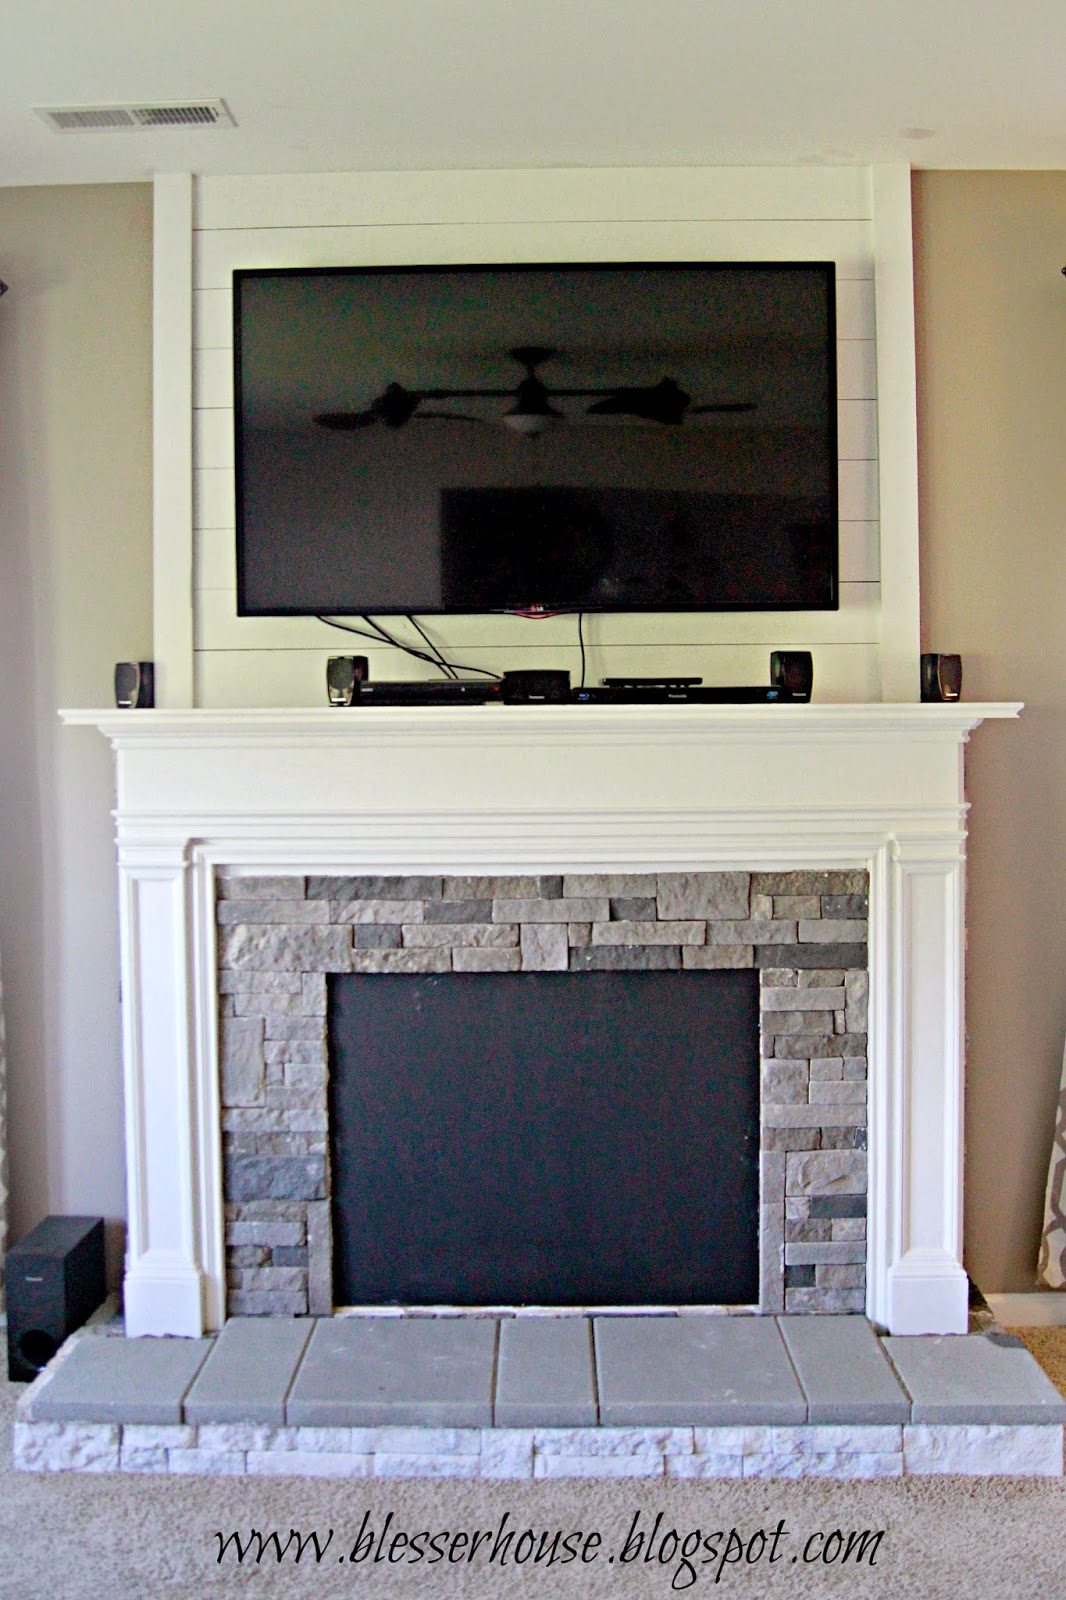 Super Remodelaholic How To Build A Faux Fireplace And Mantel Complete Home Design Collection Epsylindsey Bellcom